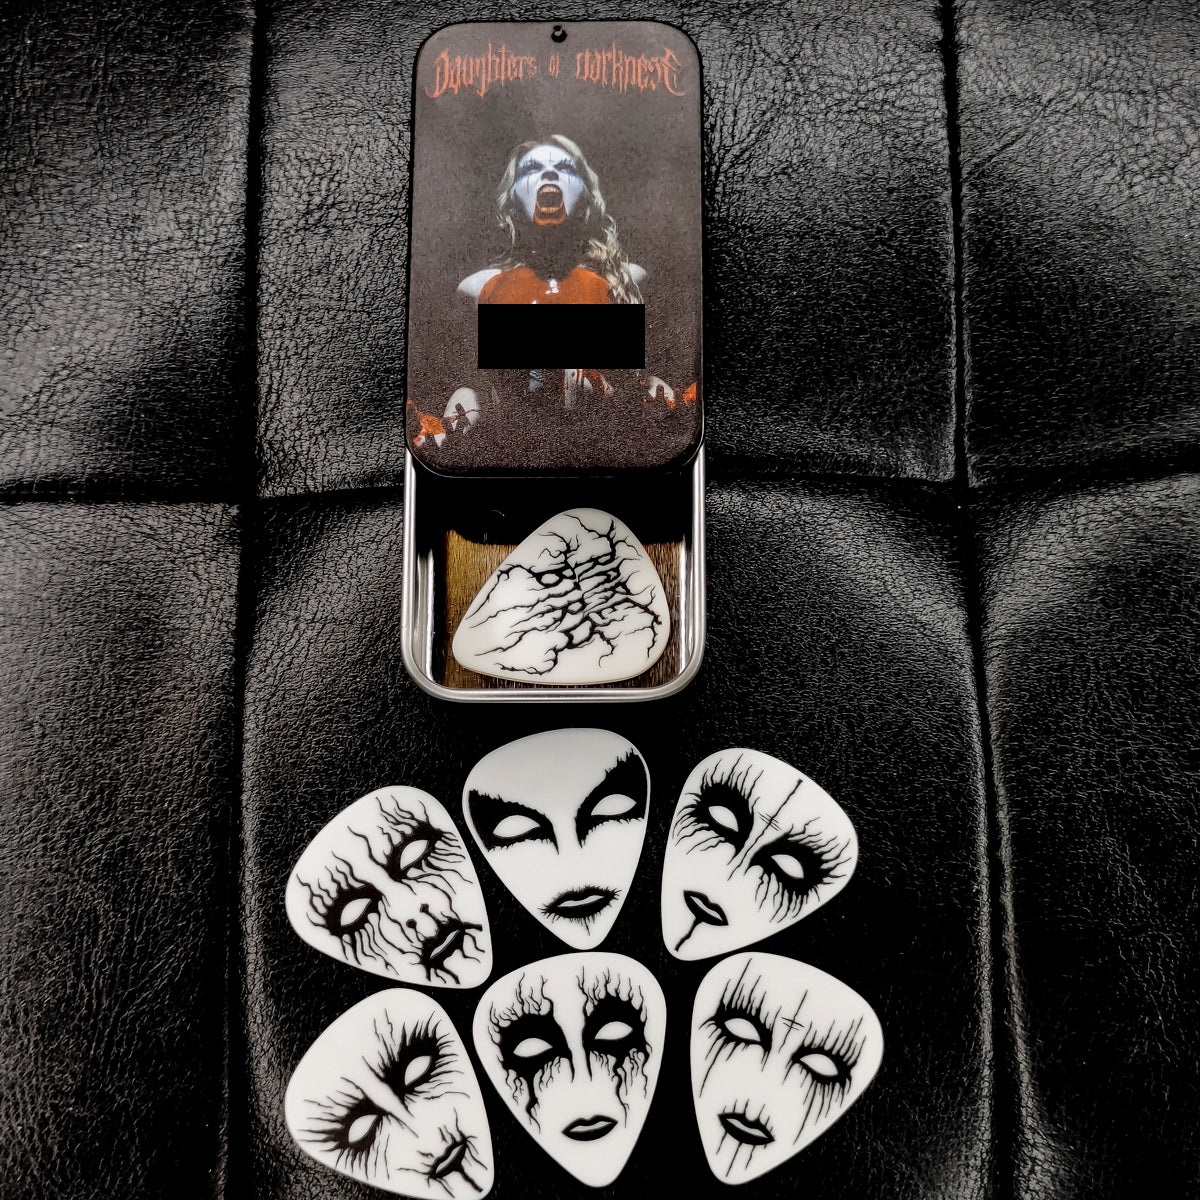 Daughters of Darkness - Guitar Pick Tin - Bathory